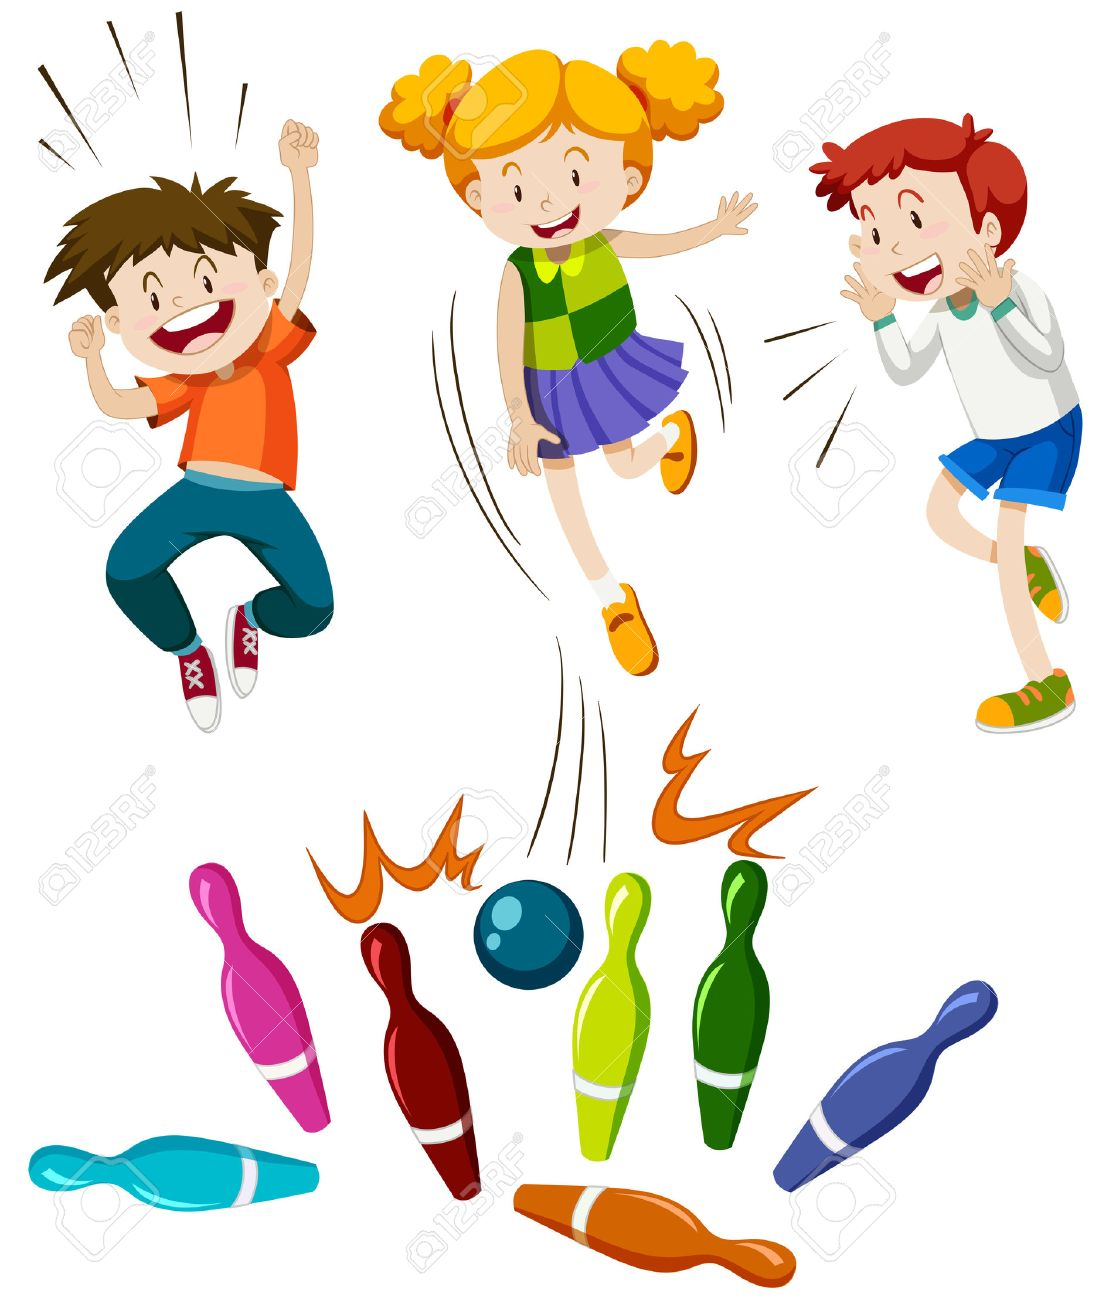 Children playing game of bowling illustration.